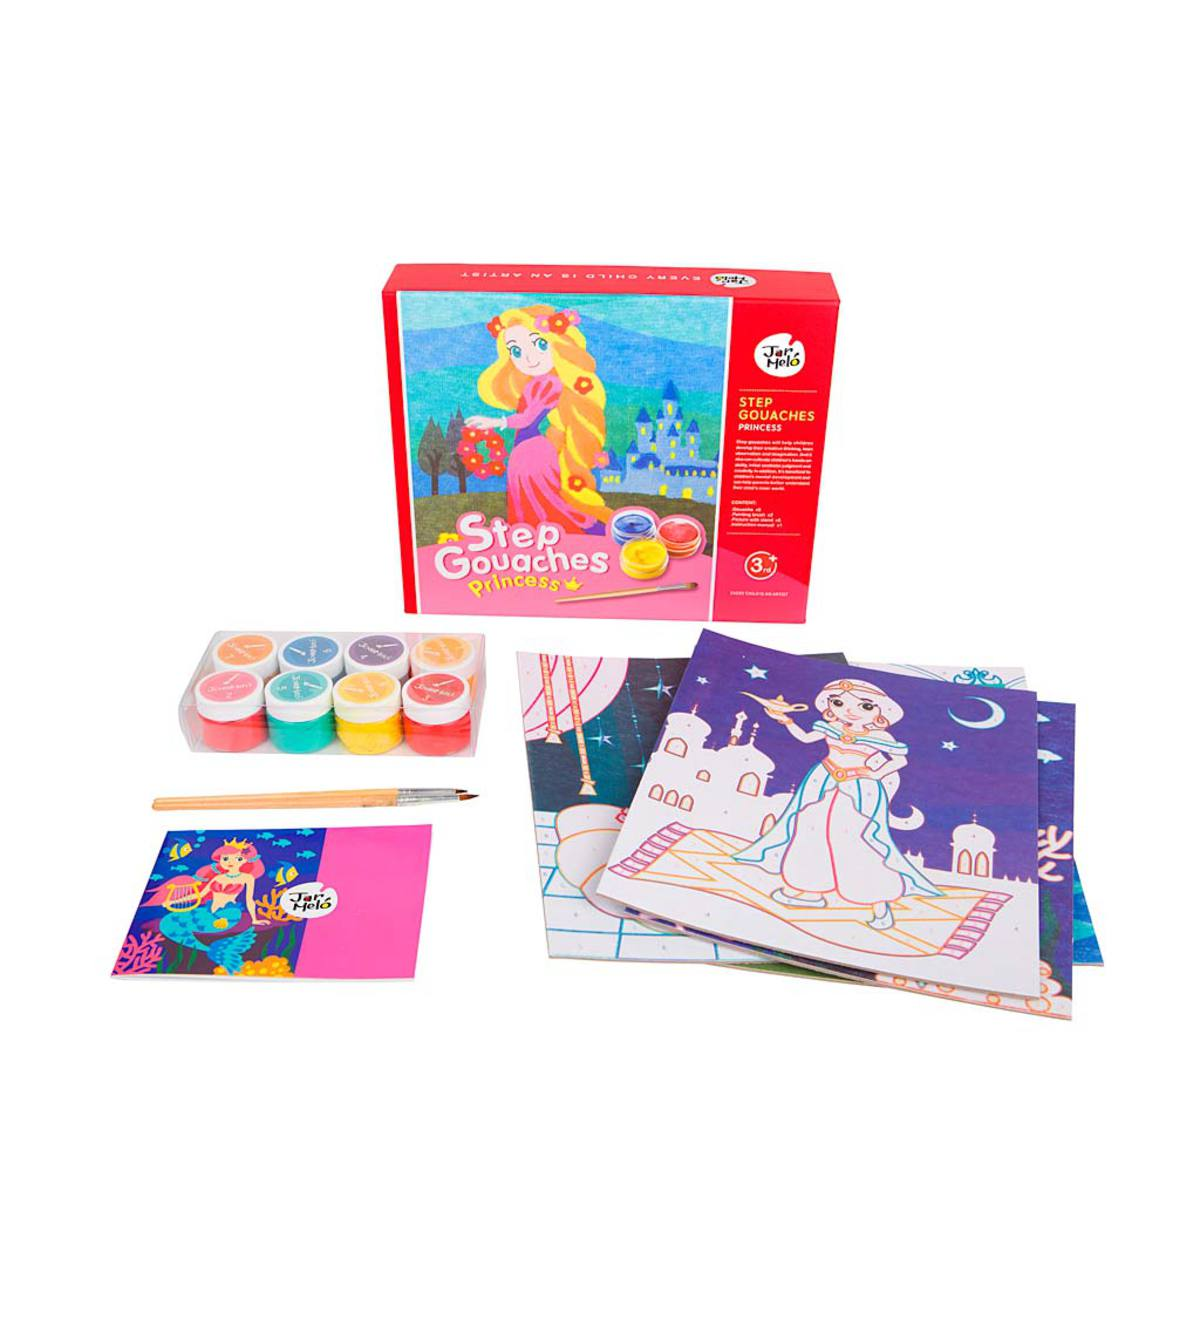 Princess Step-By-Step Gouache Painting Kit